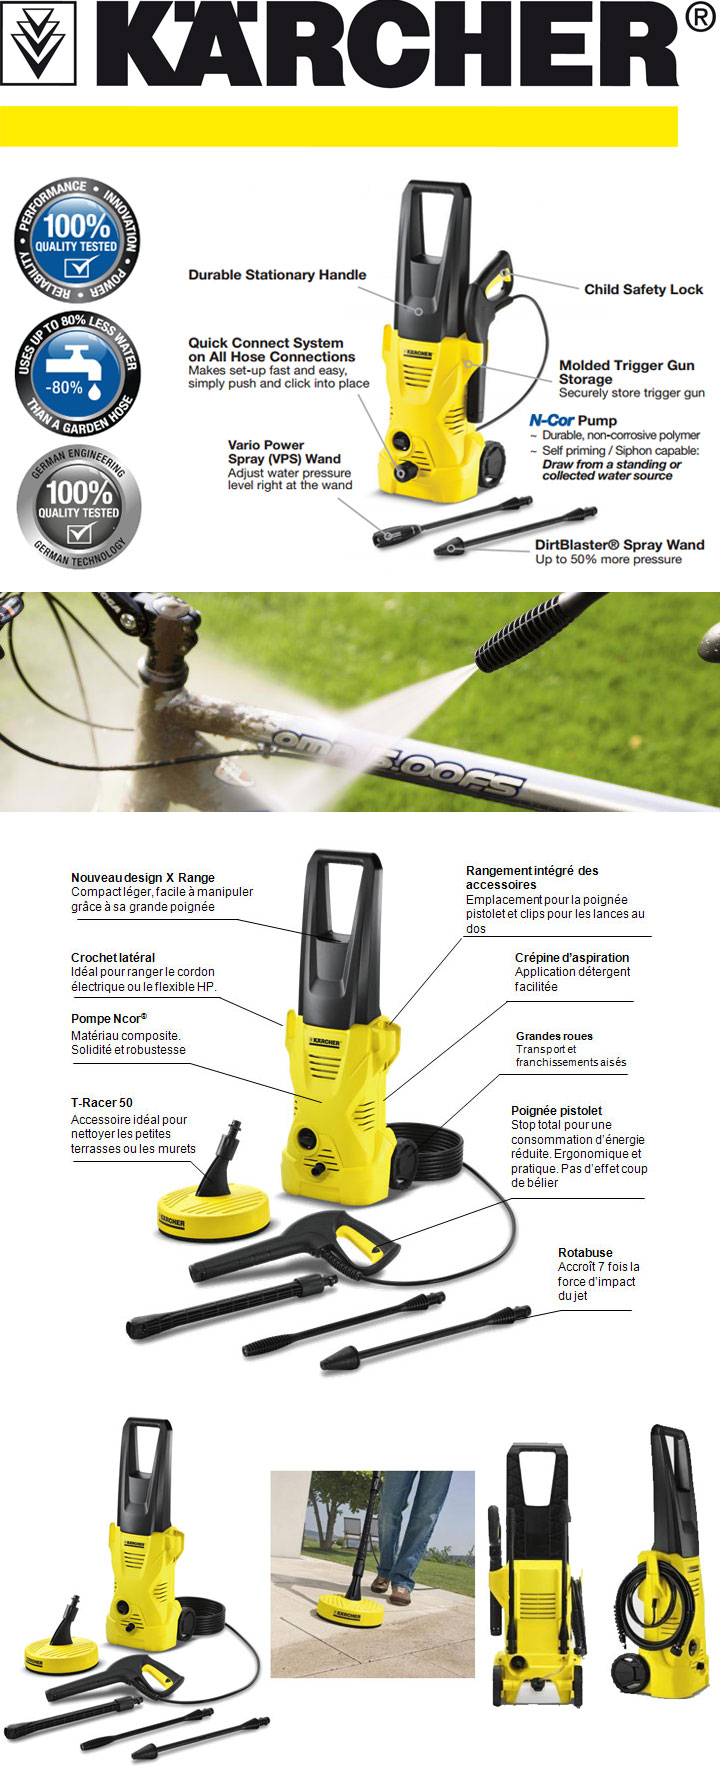 Karcher K 2300 - Infographic Best Electric Pressure Washer Reviews